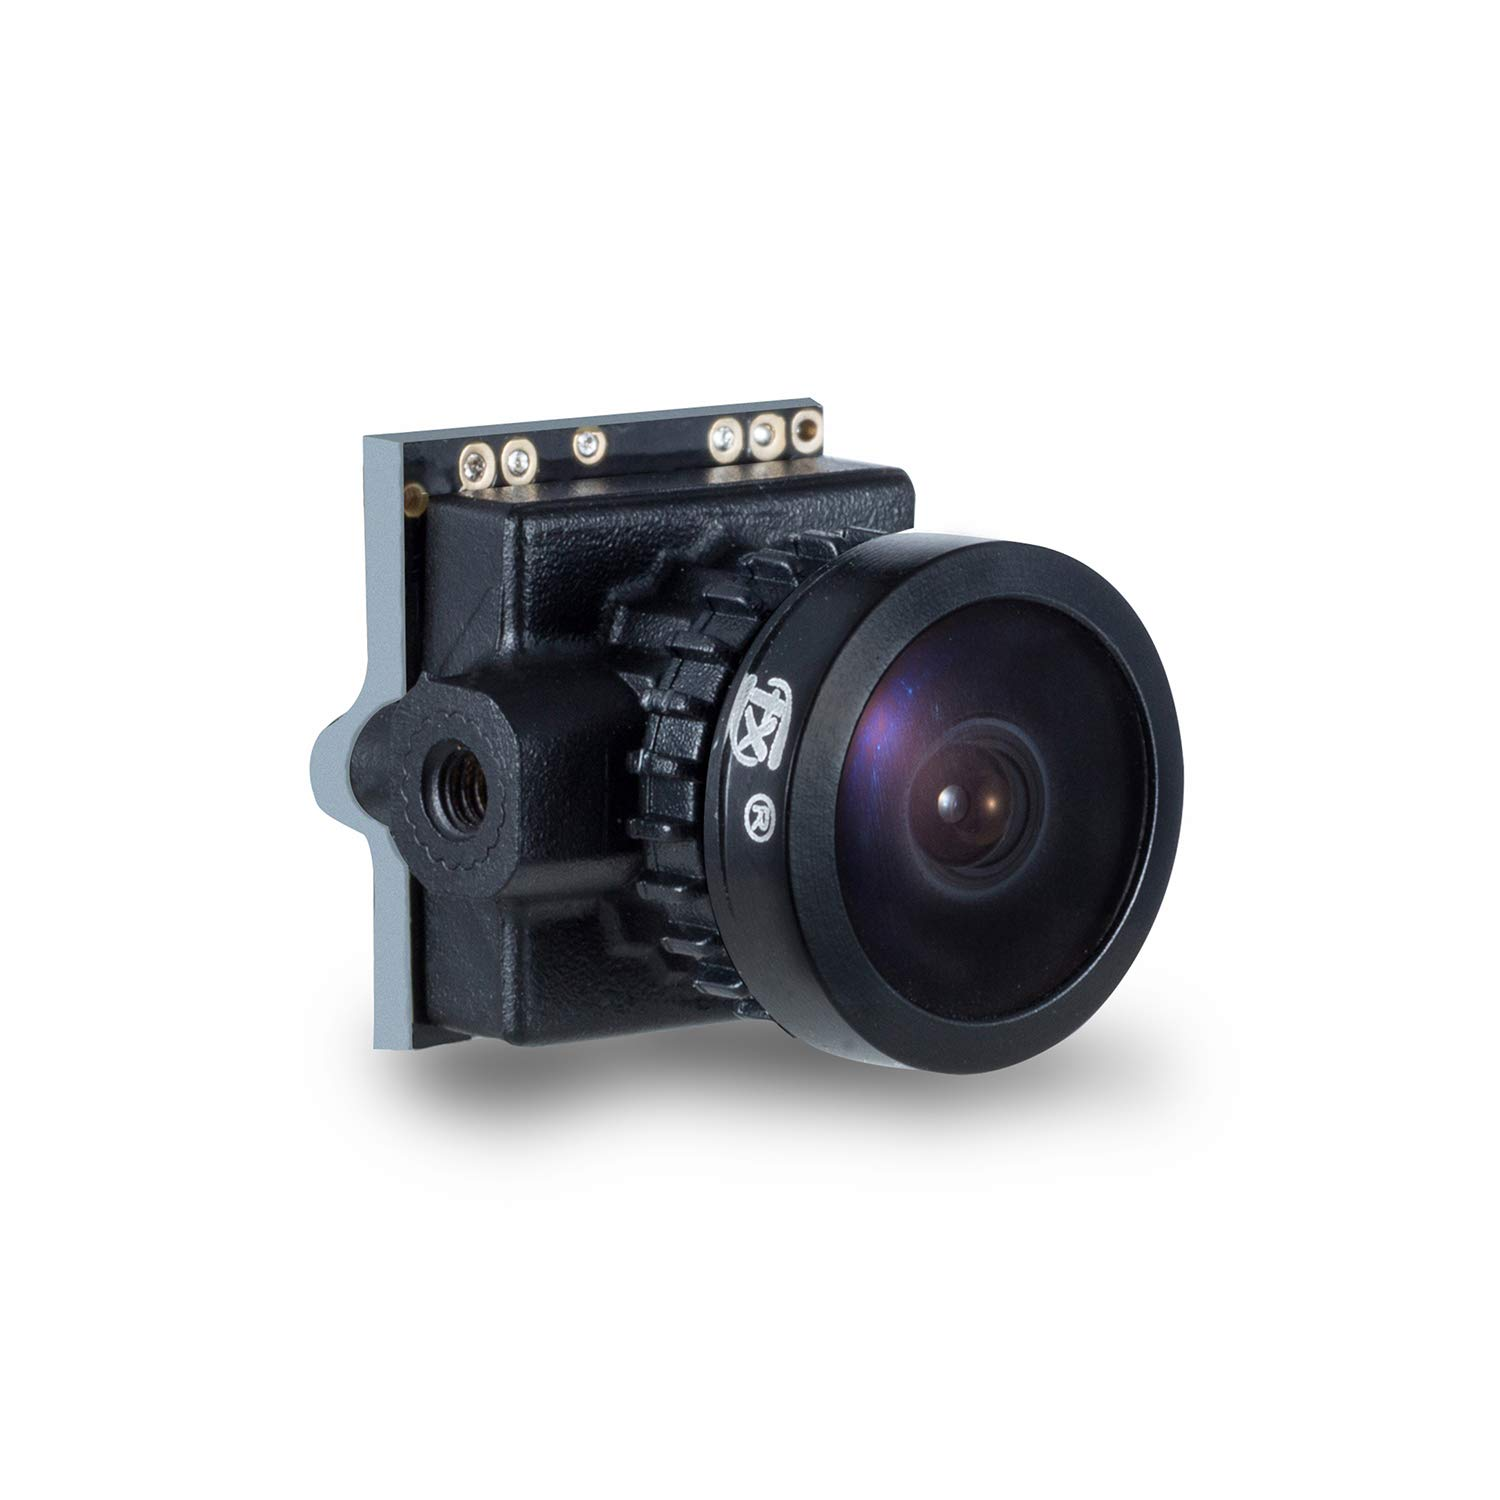 FXT T80 1/3 800TVL PAL/NTSC 16:9/4:3 Mini FPV Camera The Smallest OSD Camera for FPV Racing Drone Quadcopter